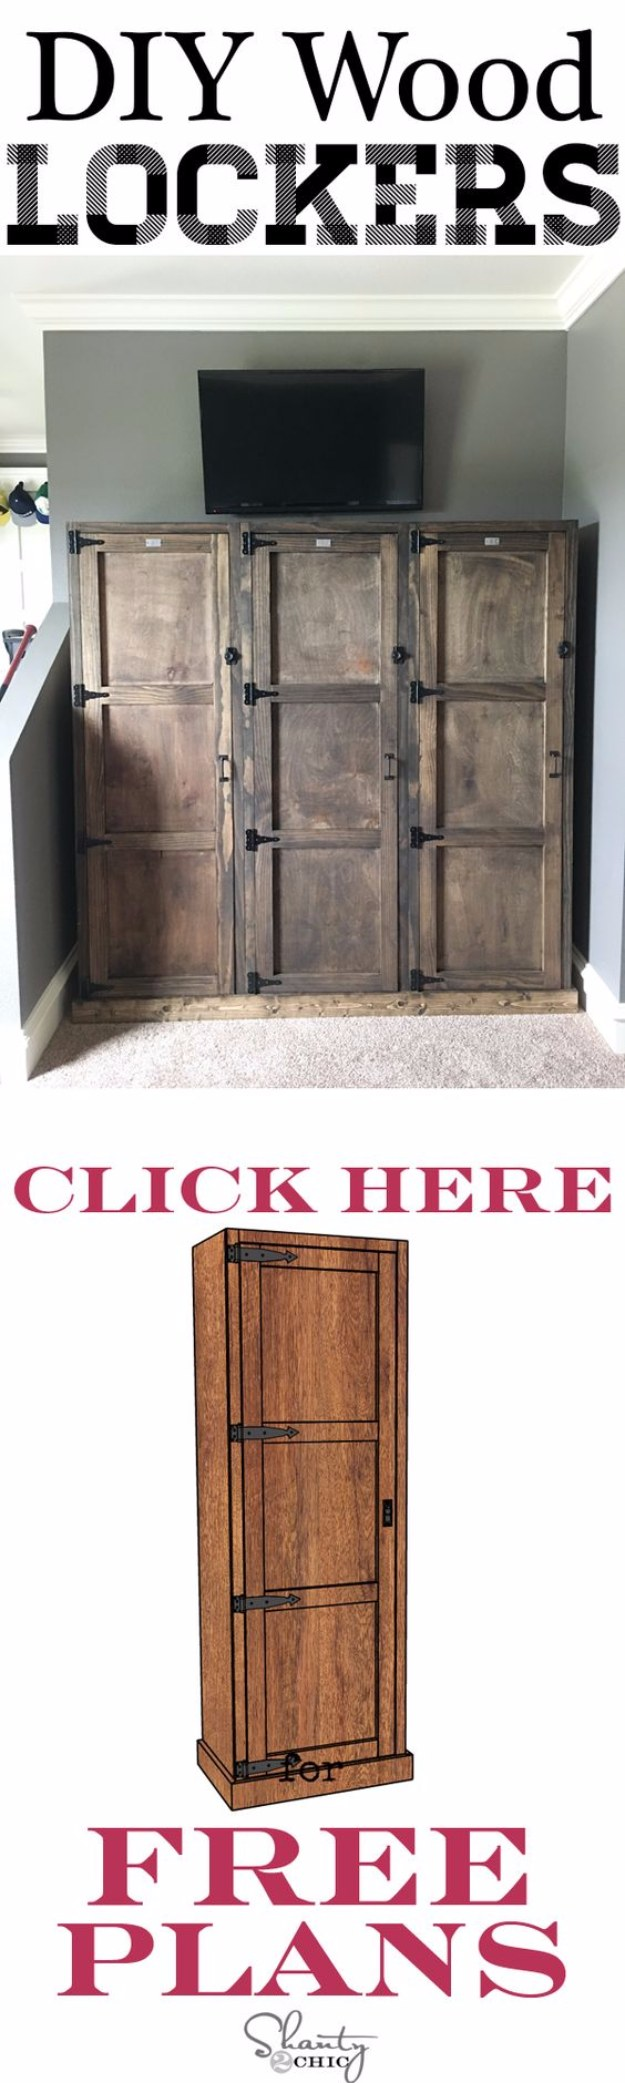 DIY Projects Your Garage Needs -DIY Garage Locker System - Do It Yourself Garage Makeover Ideas Include Storage, Organization, Shelves, and Project Plans for Cool New Garage Decor #diy #garage #homeimprovement